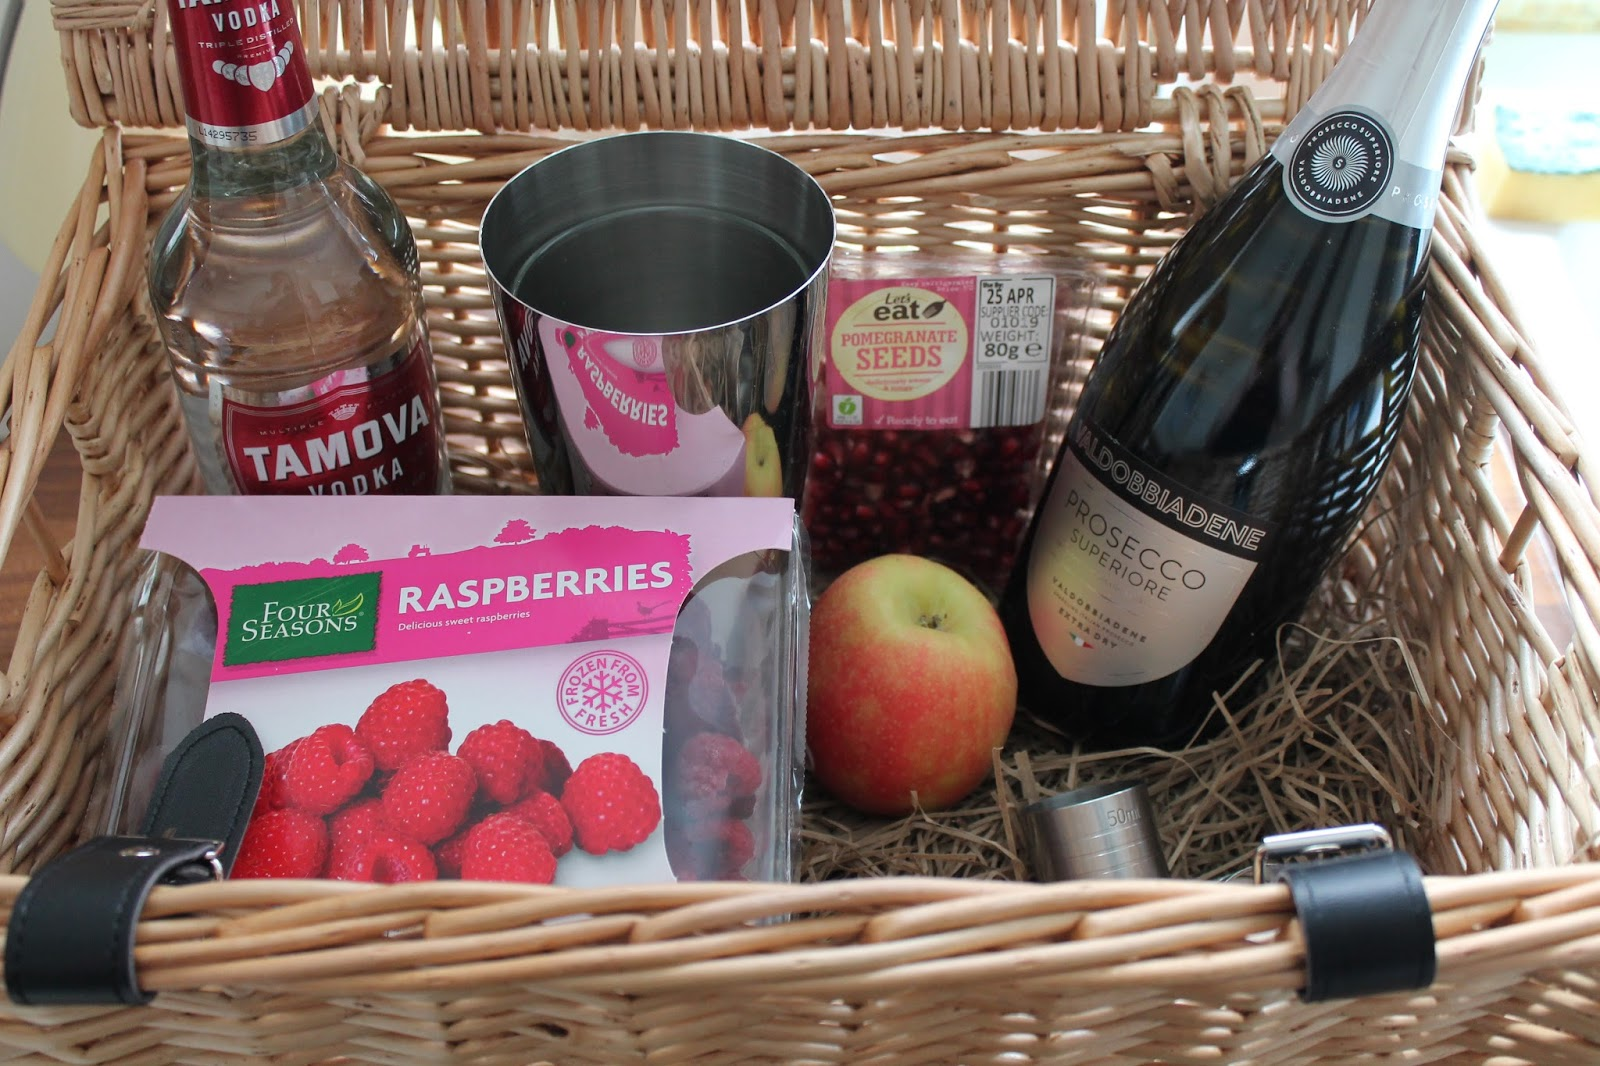 Picnic hamper containing alcoholic cocktail ingredients